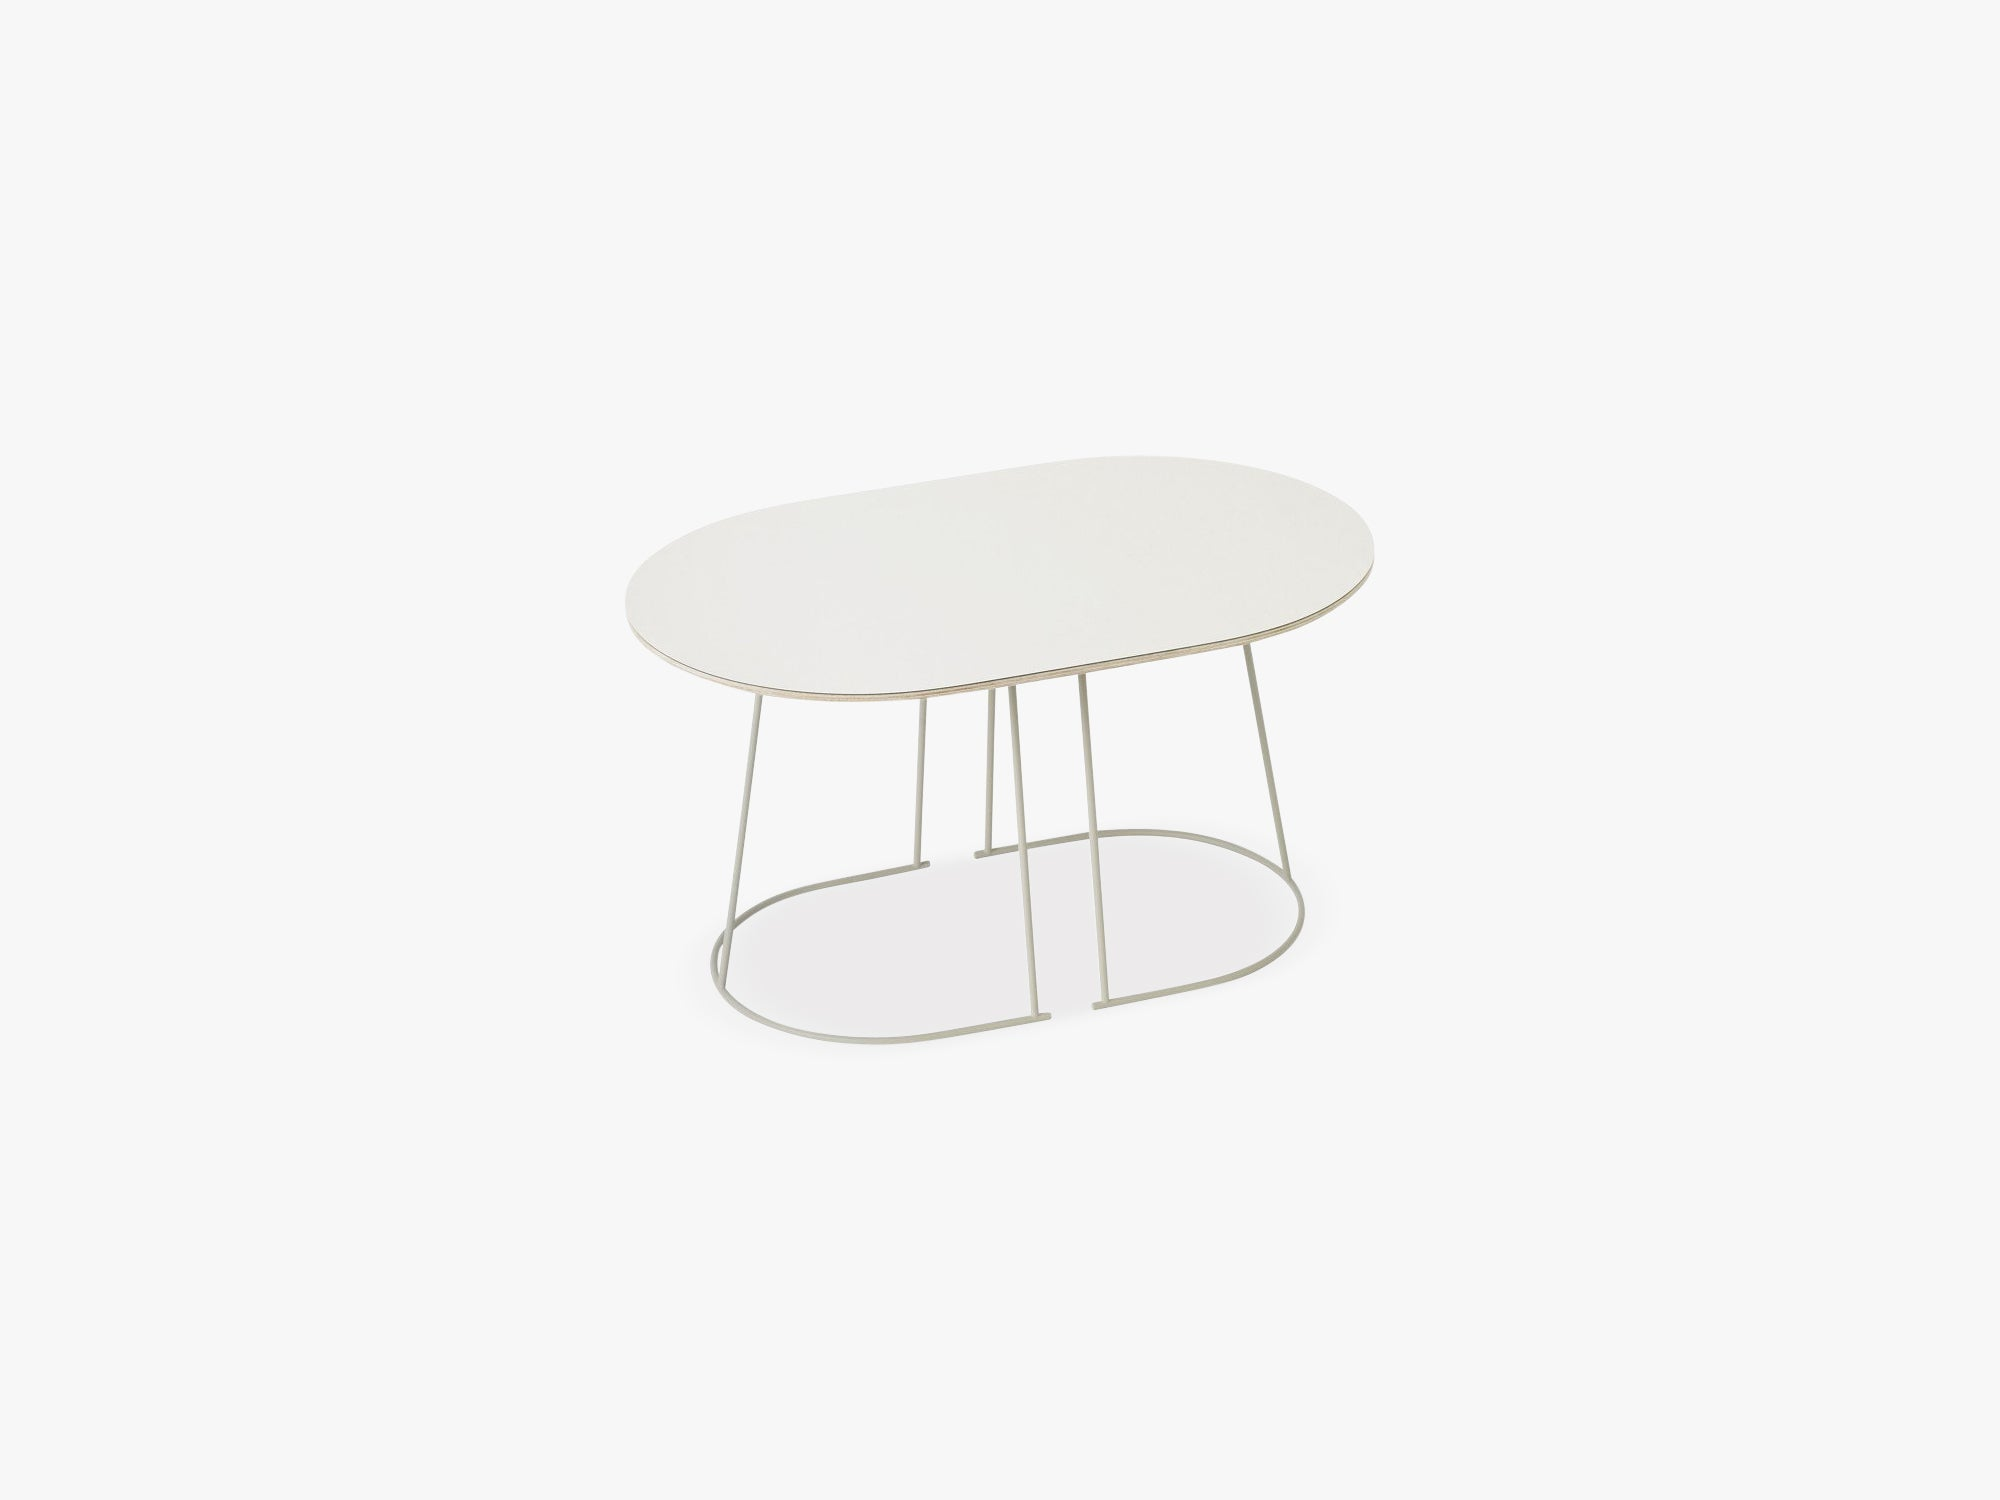 Airy Coffee Table - Small, Off-white - Nanolaminate fra Muuto